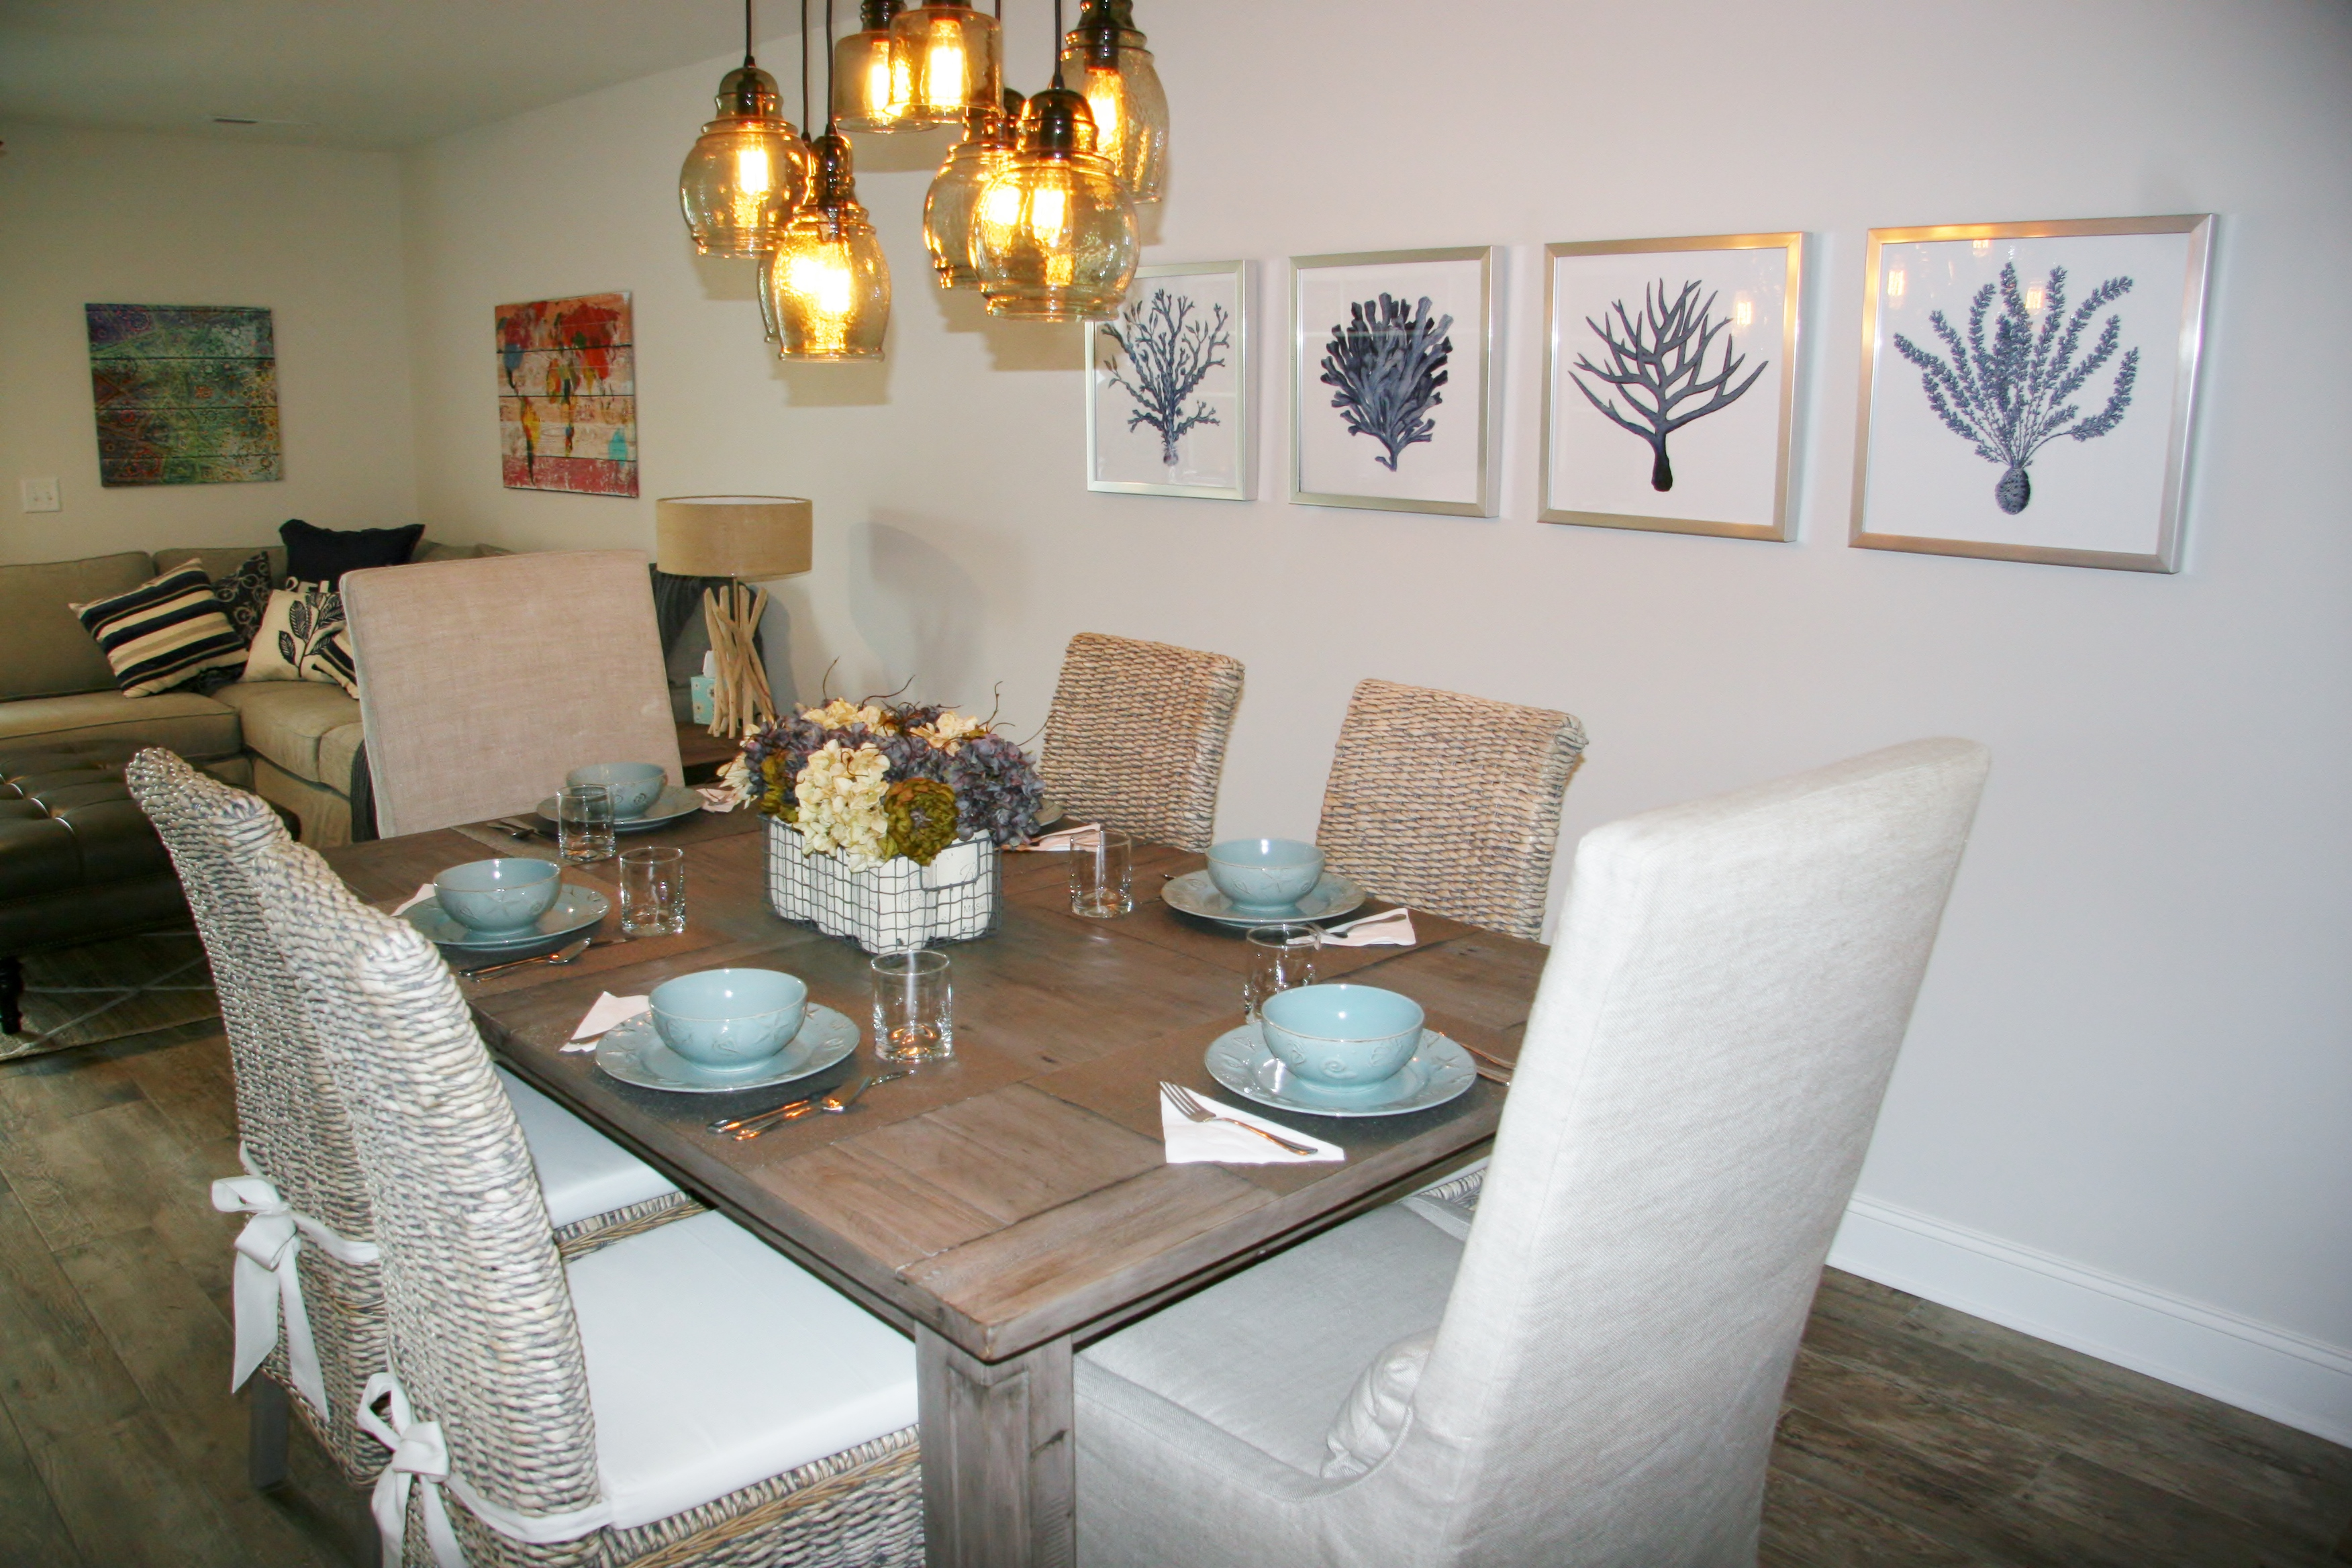 Enjoy meals at the new dining room furniture after a day at the beach.